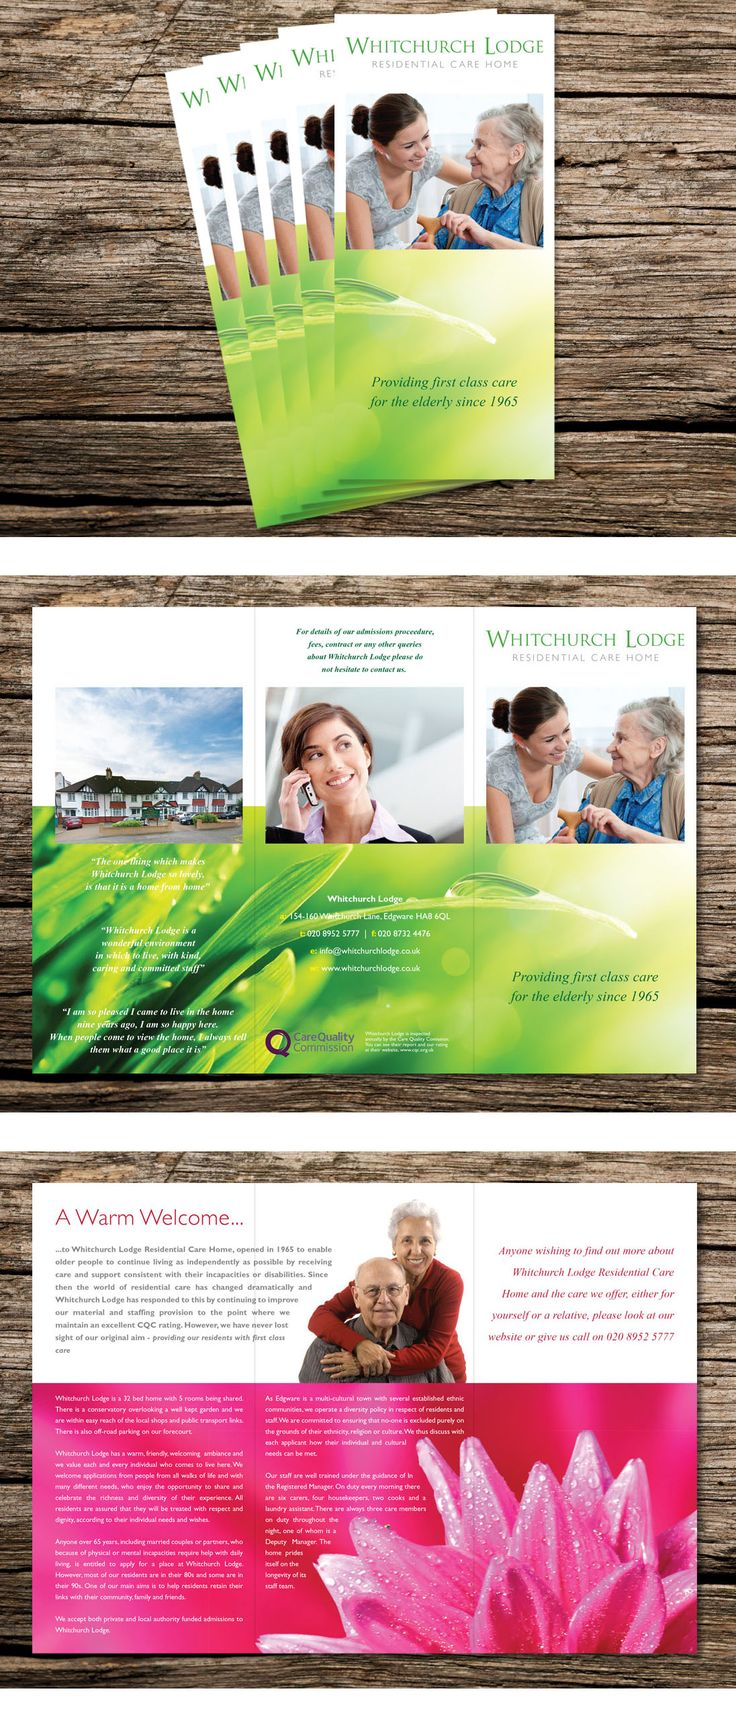 Whitchurch Lodge Residential Care Home Leaflet, 1/3 A4, 6pp.